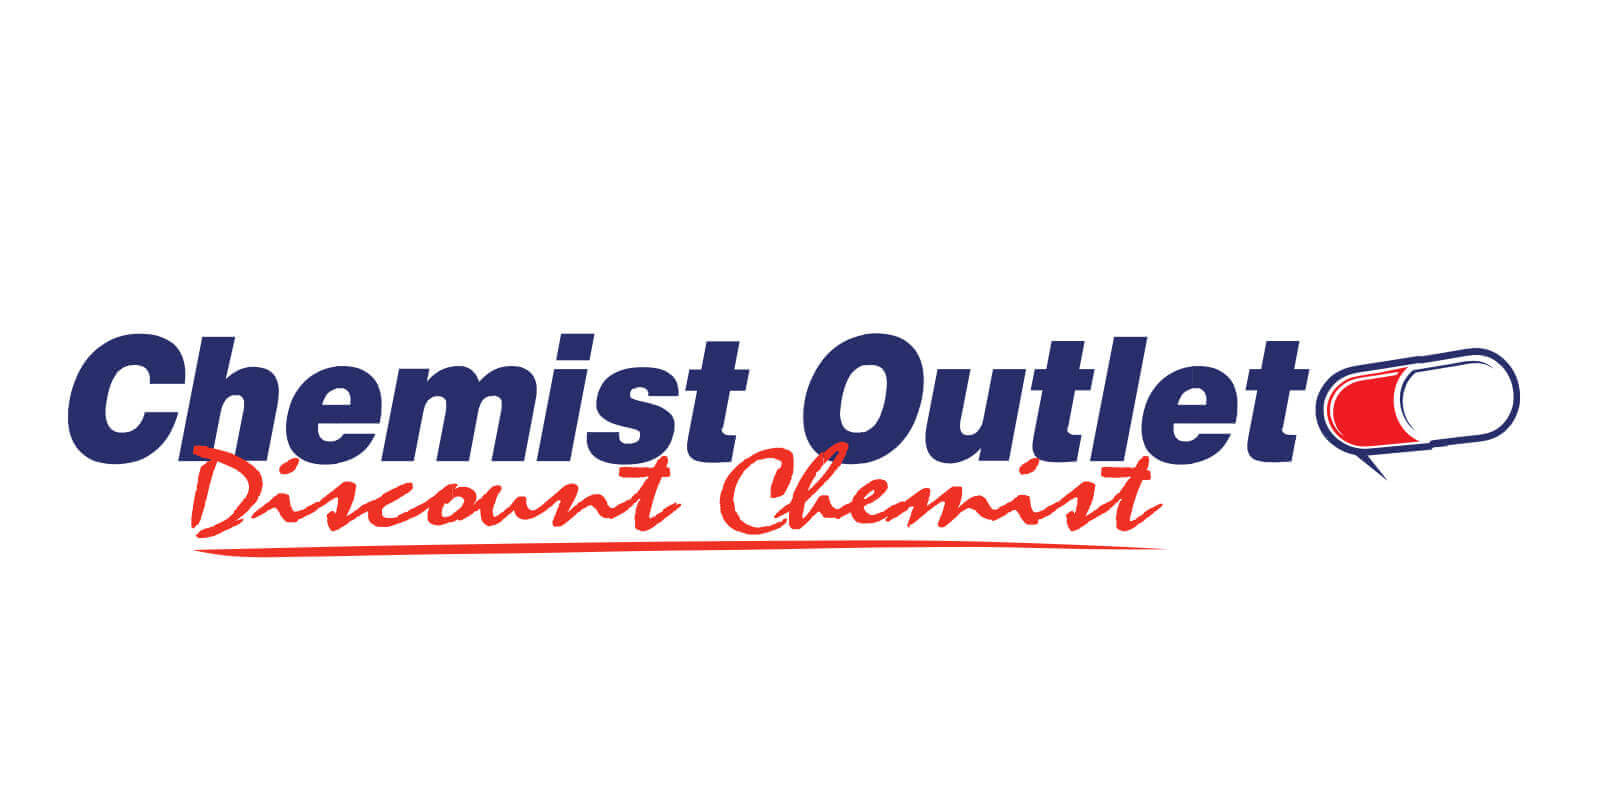 Chemist Outlet